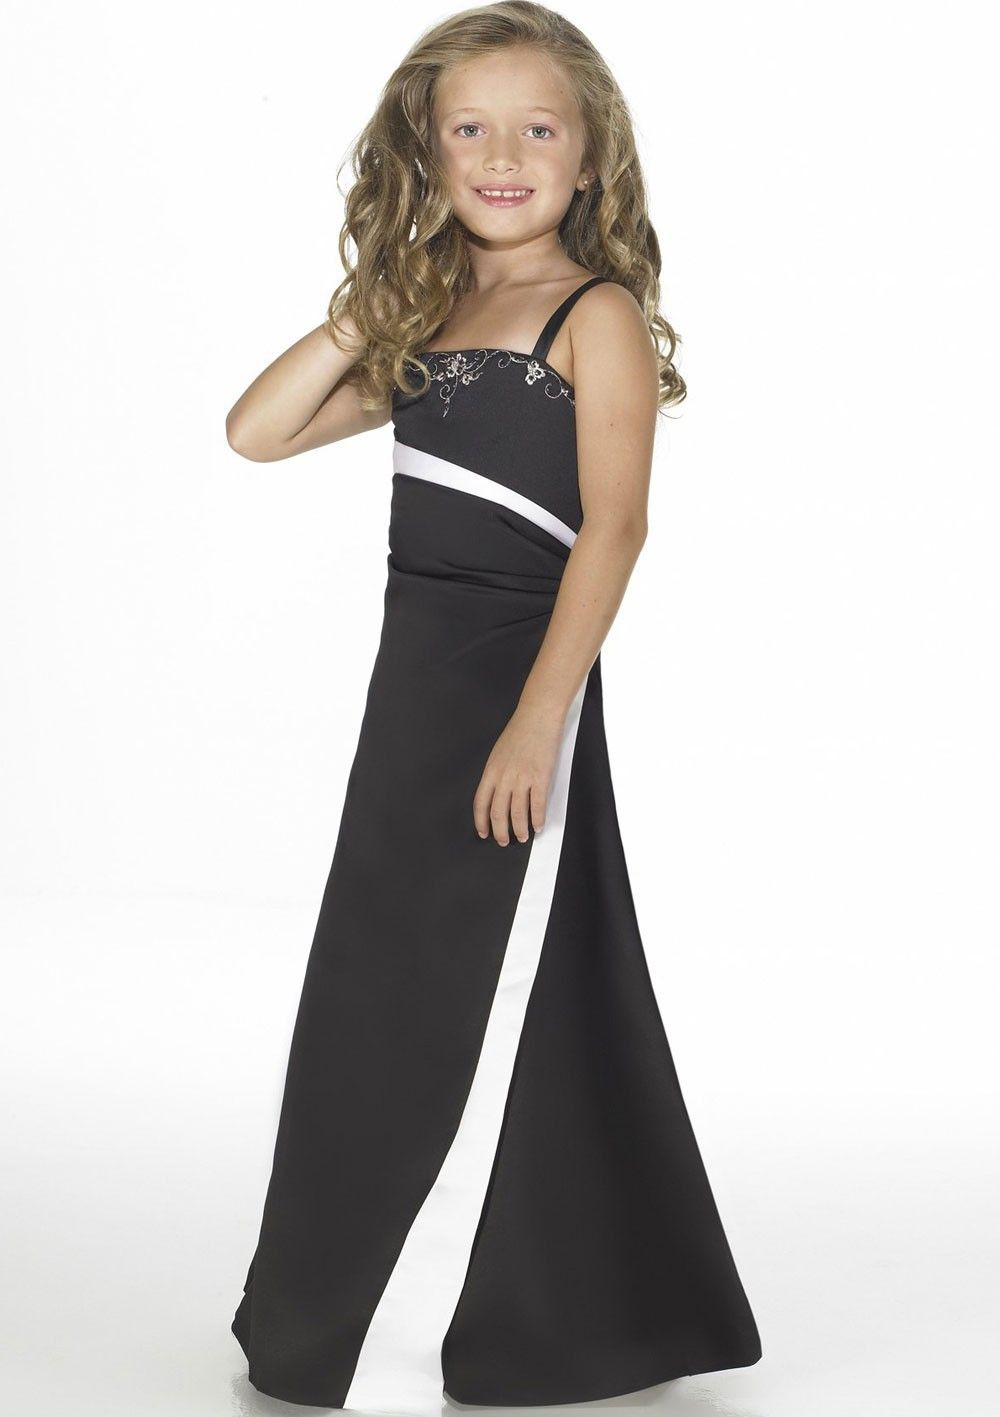 black and white junior bridesmaid dresses | Weddings | Pinterest